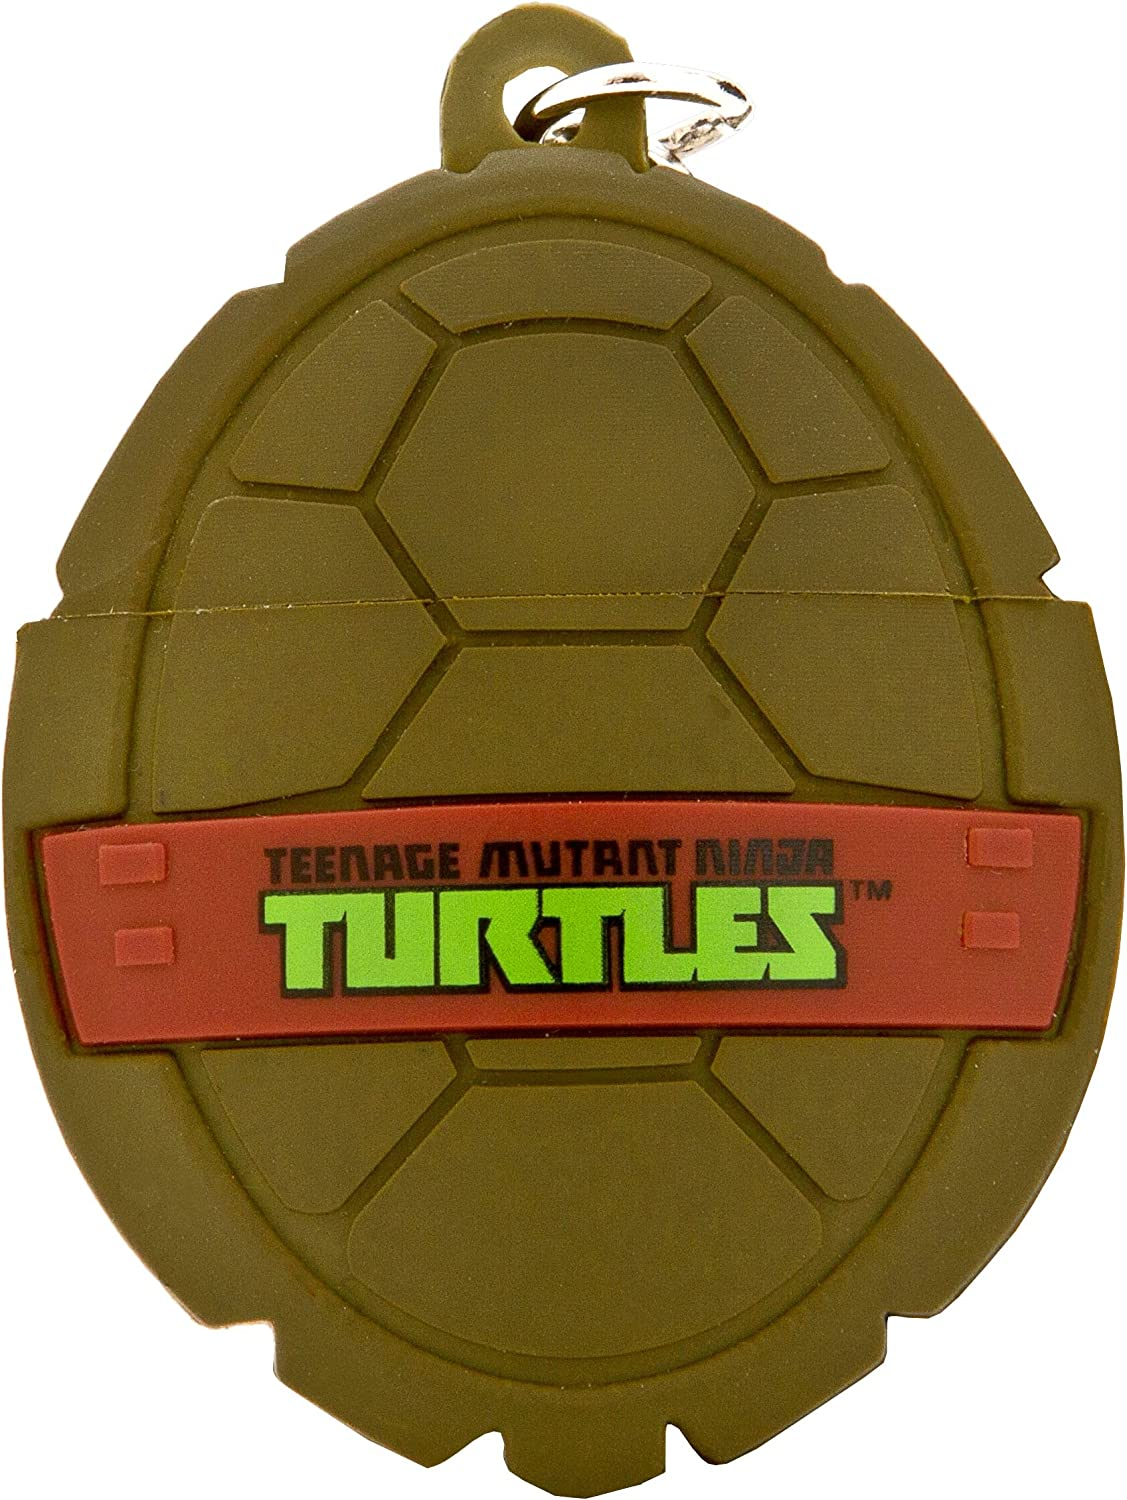 Teenage Mutant Ninja Turtles TMNT 8GB Shell USB Flash Drive (18165-8-ESP)